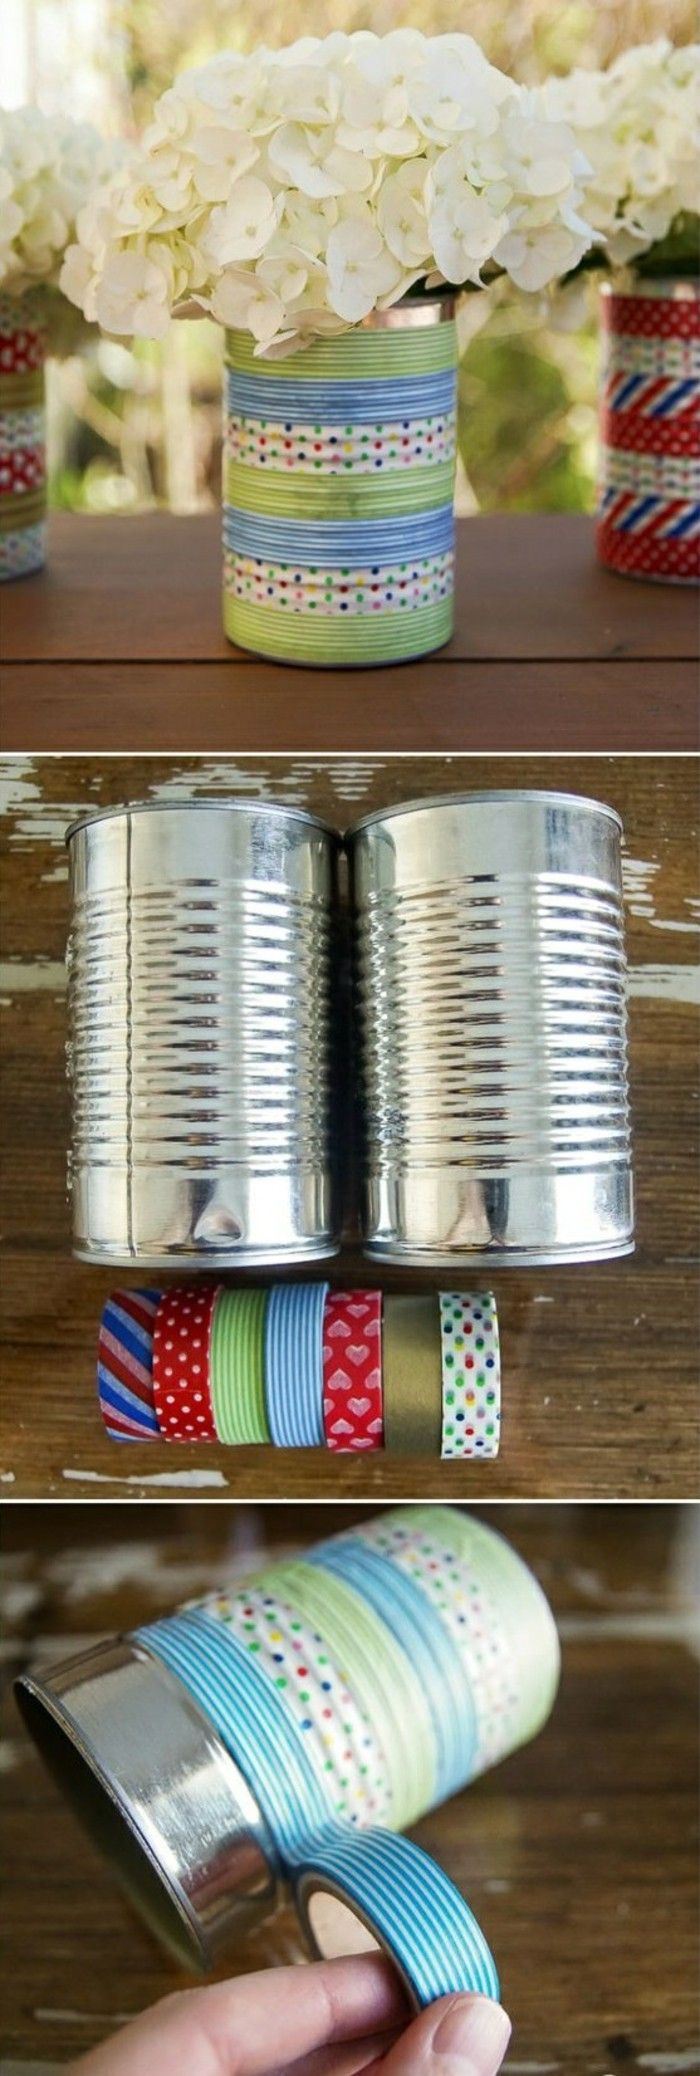 tinker-with-make-tin cans-flowerpot-washy tapes-white-flowers-yourself